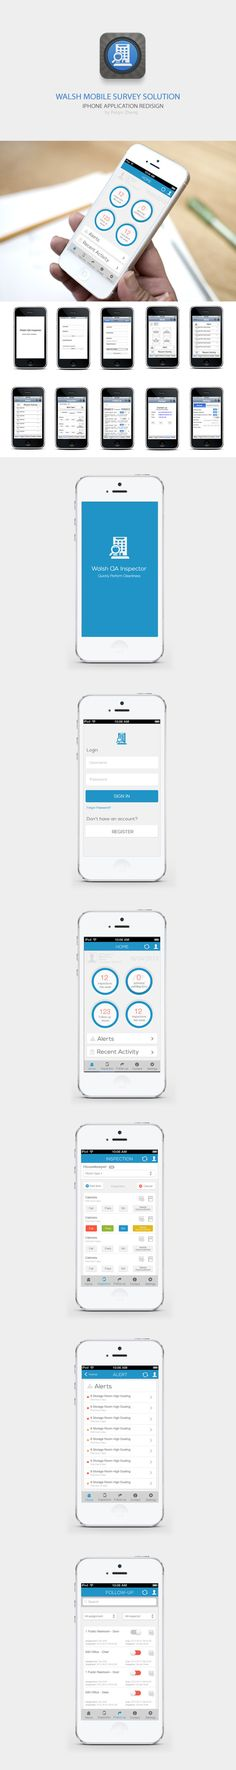 Inspector App for Iphone Ios7 Style by Pq Z, via Behance *** #app #gui #ui #behance